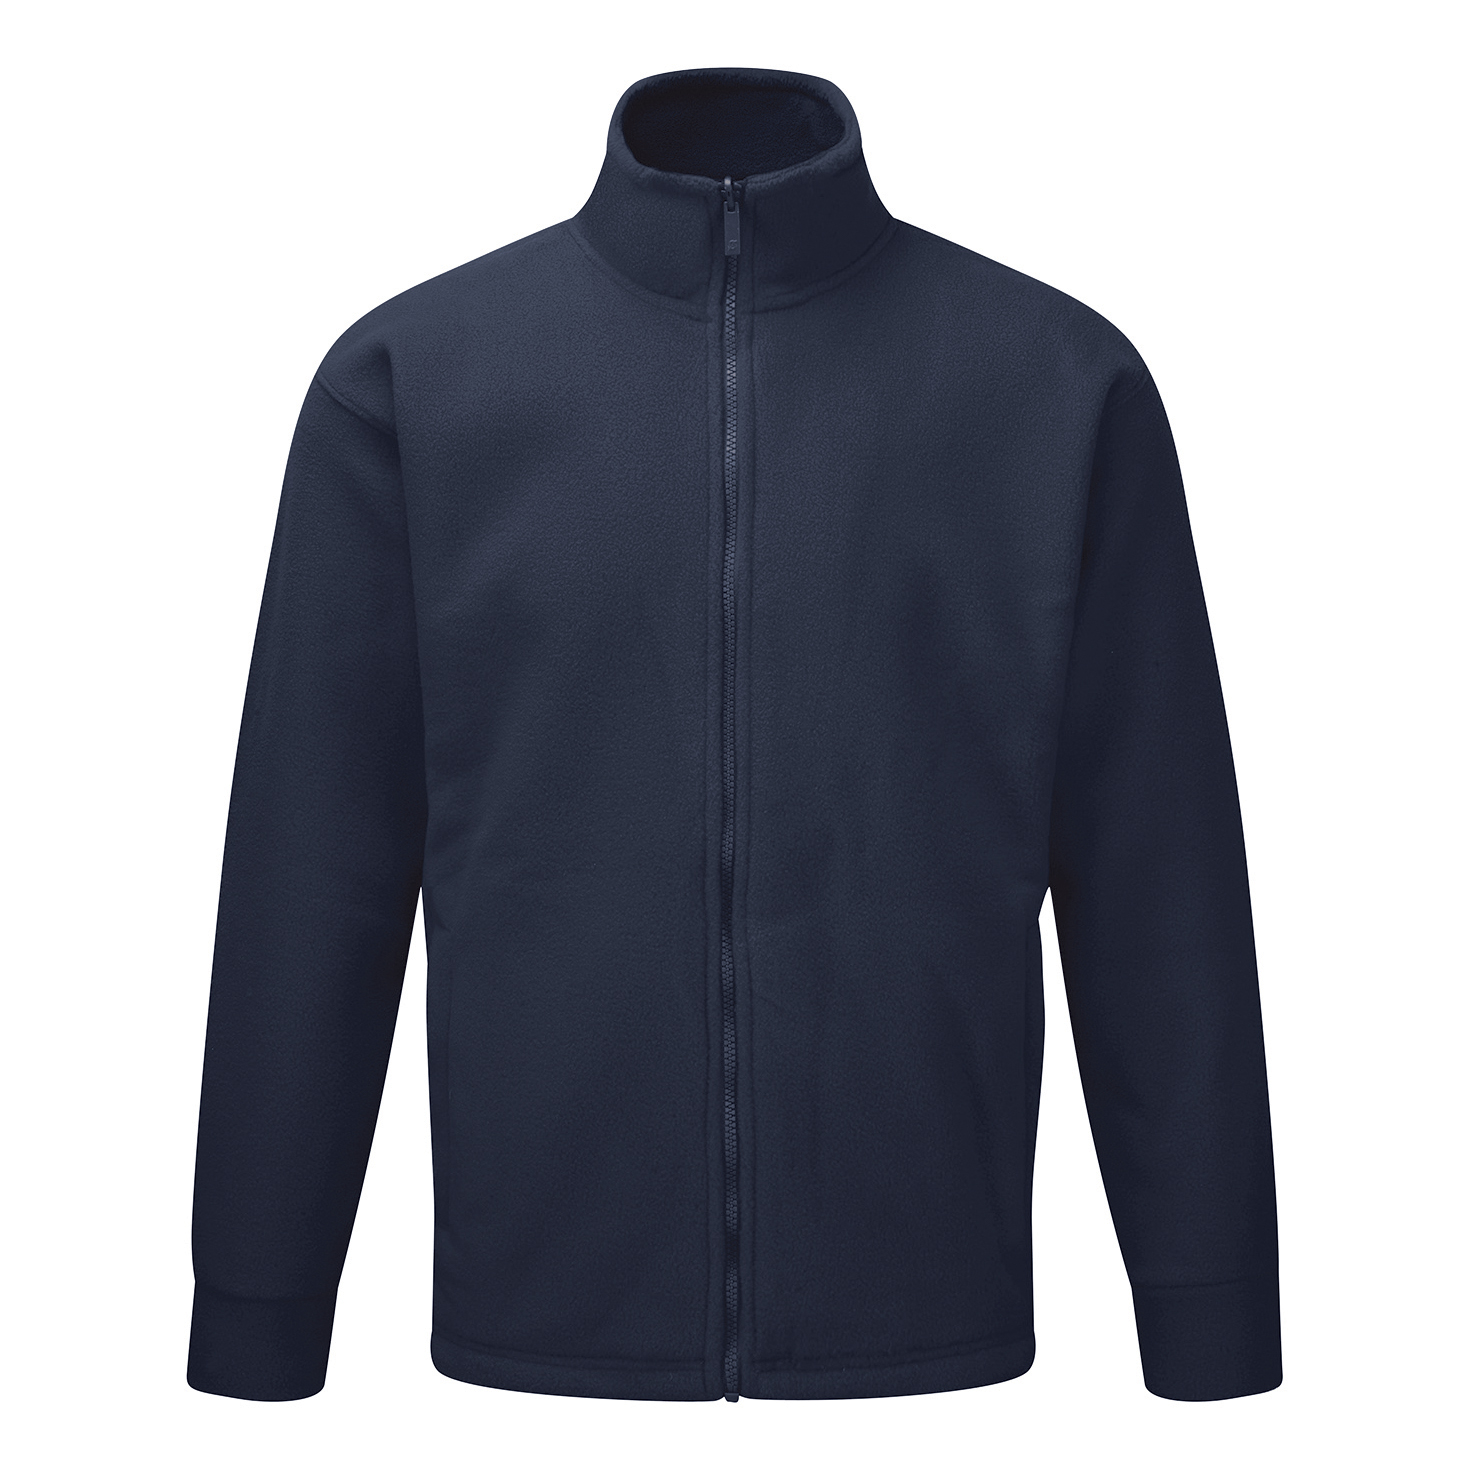 Fleeces Classic Fleece Jacket Elasticated Cuffs Full Zip Front 3XL Navy Blue Ref FLJNXXXL *1-3 Days Lead Time*